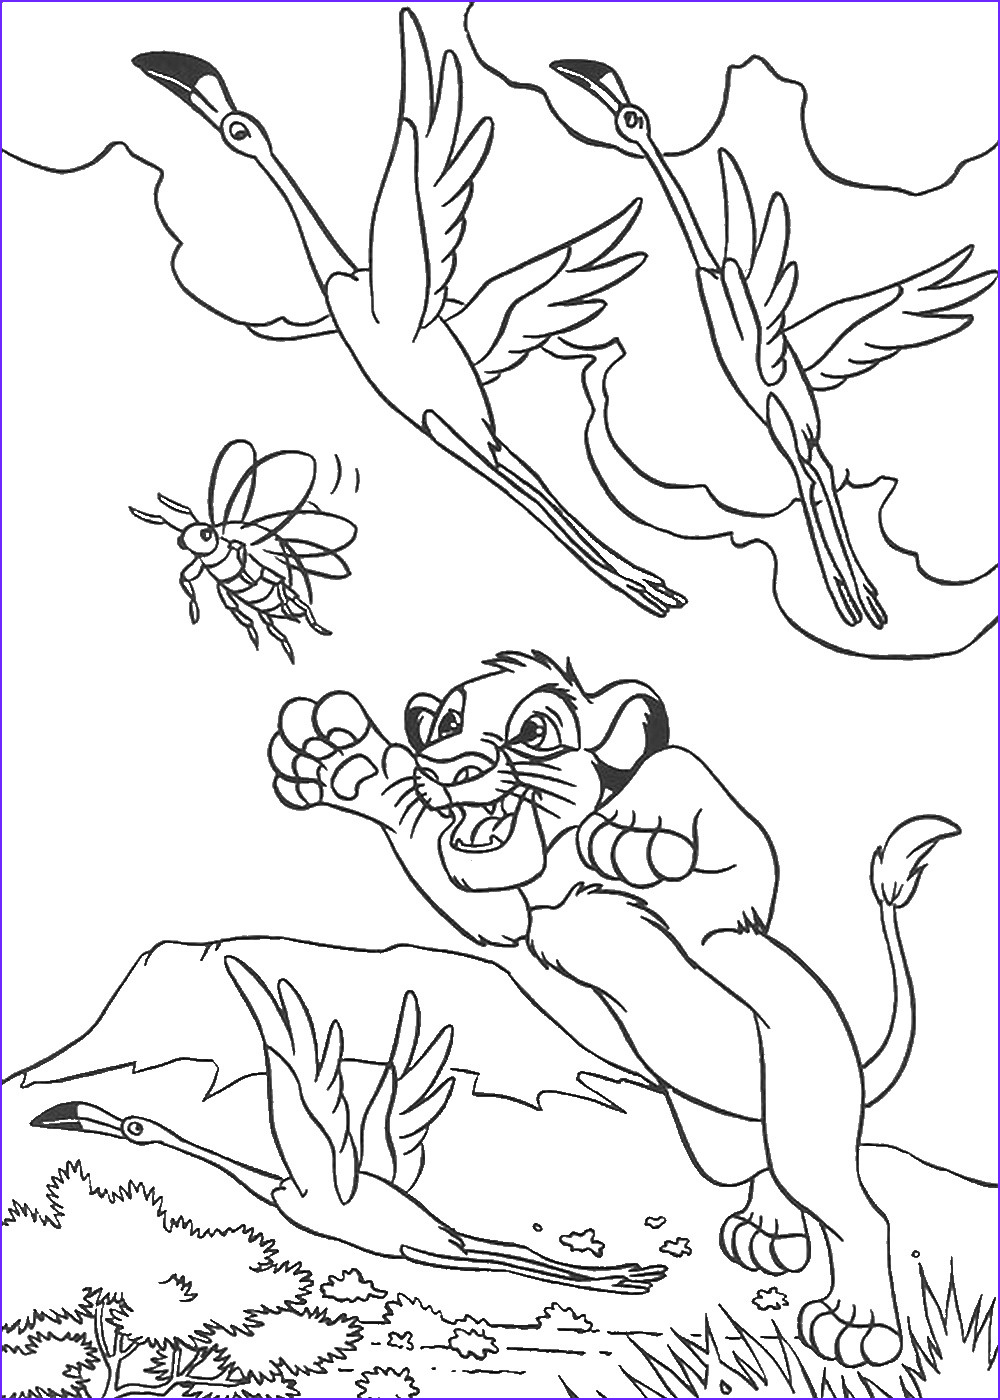 Lion King Coloring Sheet Beautiful Photos the Lion King Coloring Pages